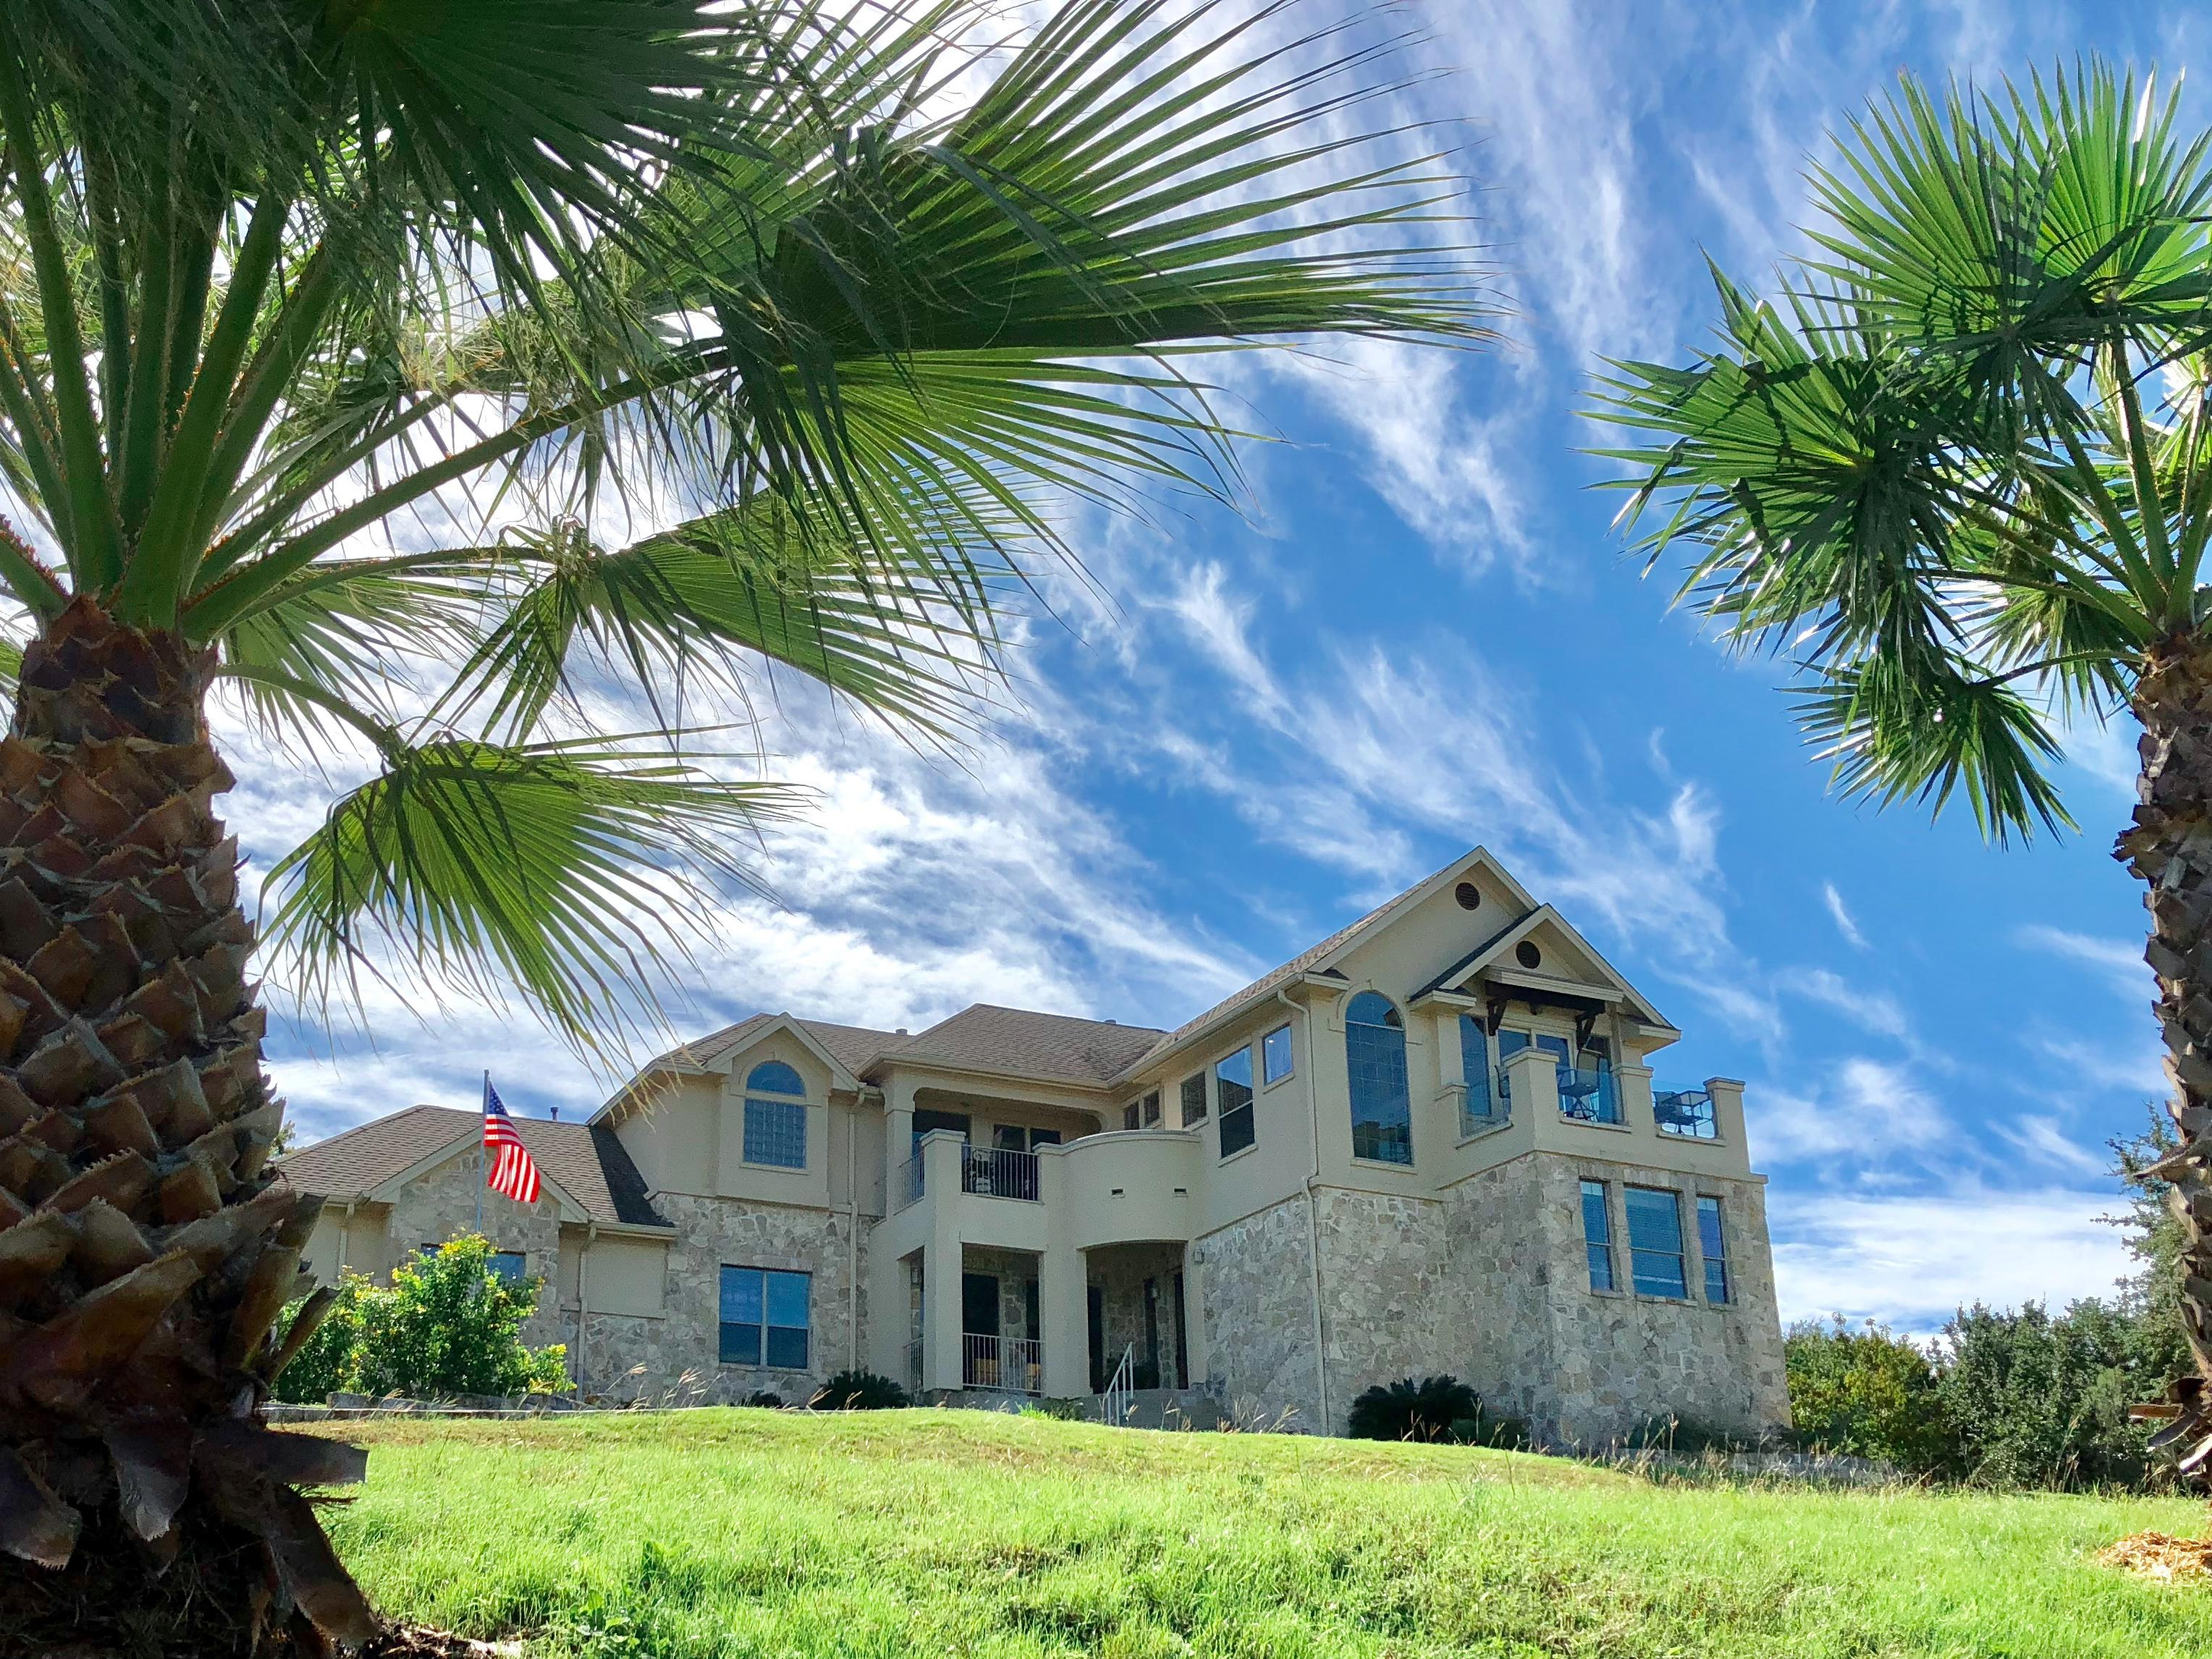 Welcome! This stunning home is professionally managed by TurnKey Vacation Rentals.This stunning estate is bordered by beautiful landscape including mature palm trees.